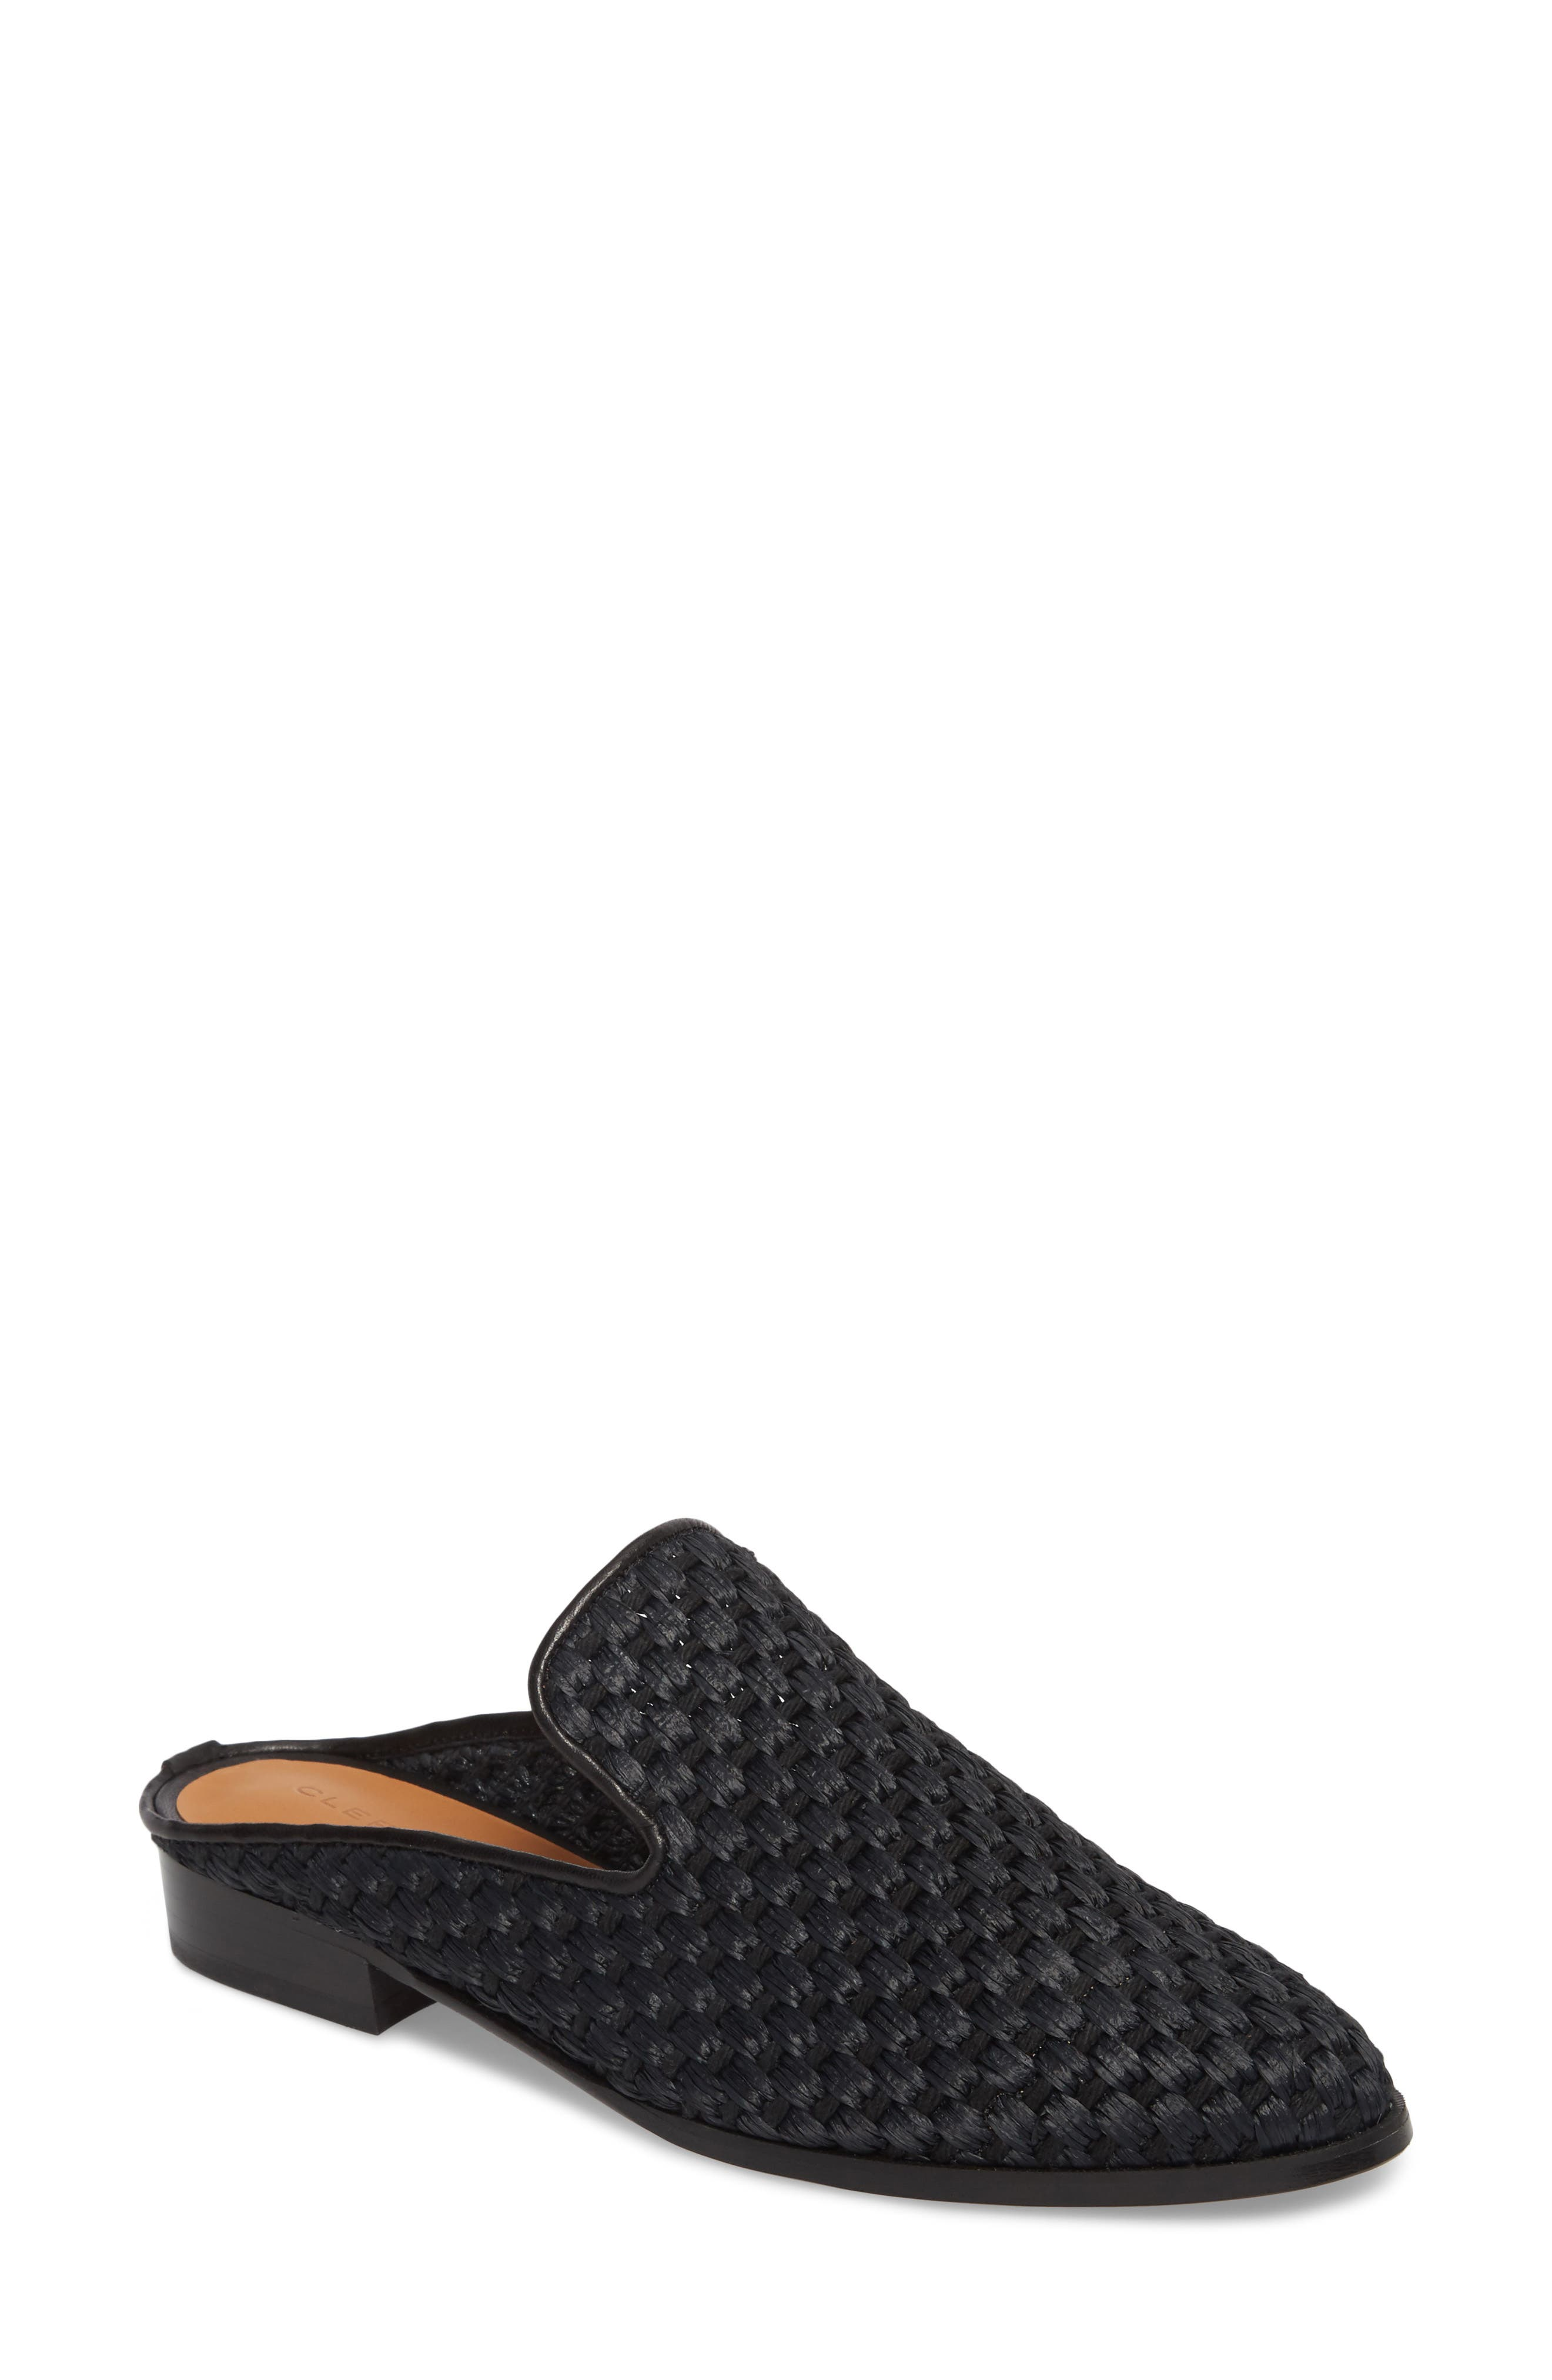 Alternate Image 1 Selected - Robert Clergerie Aliceop Woven Loafer Mule (Women)